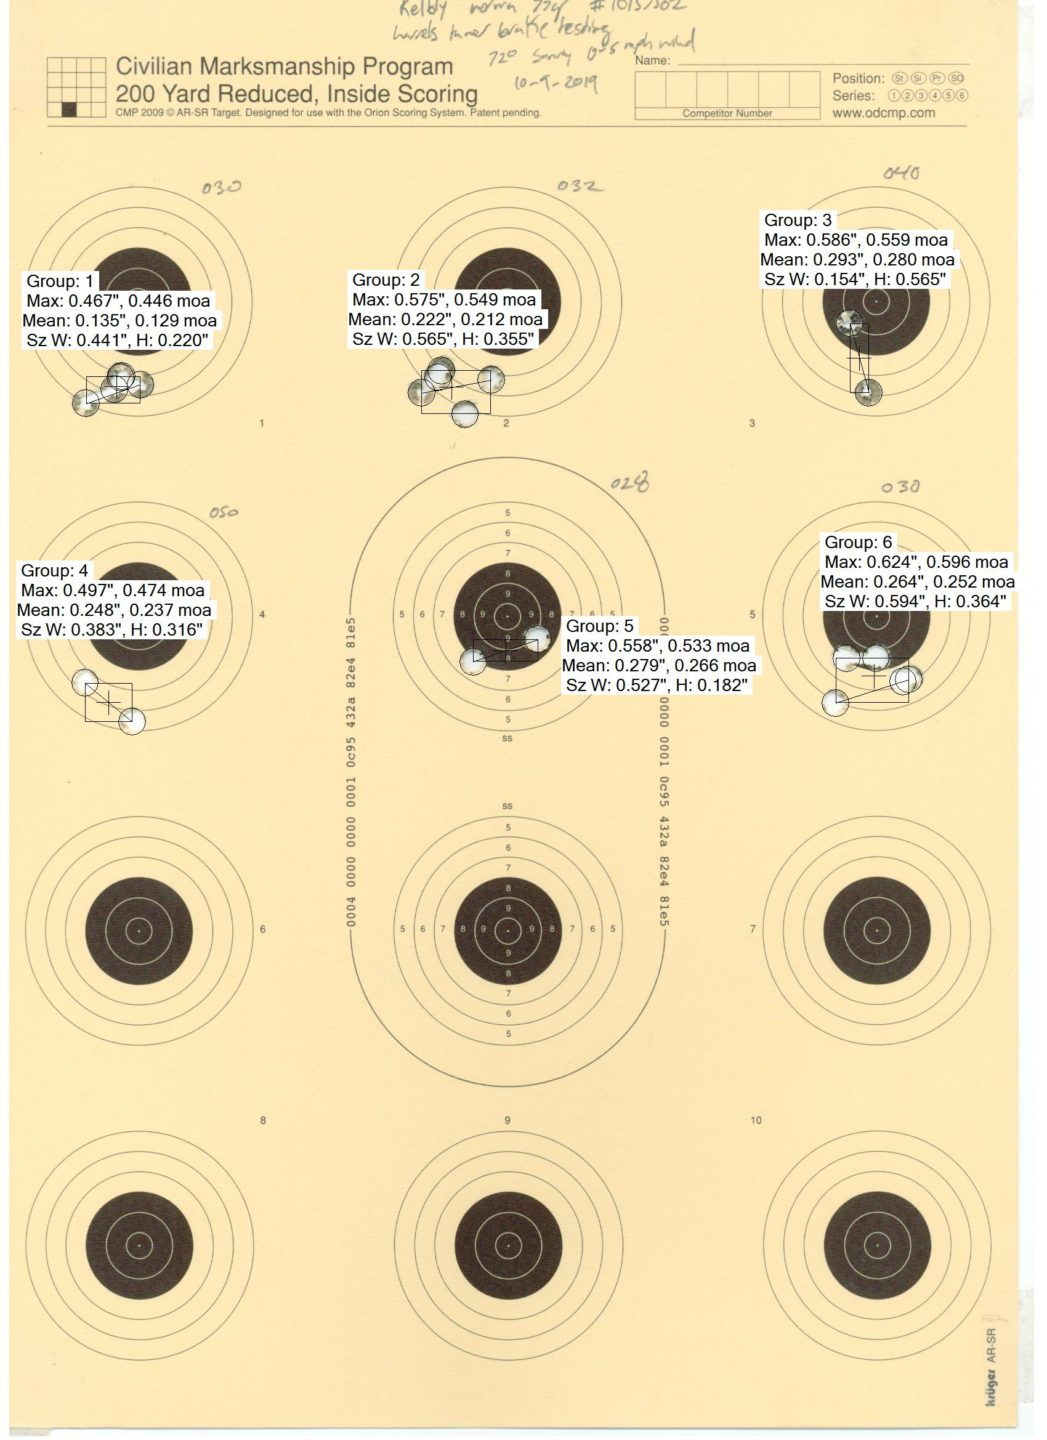 Second Barrel tuning test target fired from the Kelbly Atlas Tactical .223 Rem rifle with Norma USA 77gr SMK ammo and the Harrell's tuner brake. Hand written numbers correspond to tuner settings.